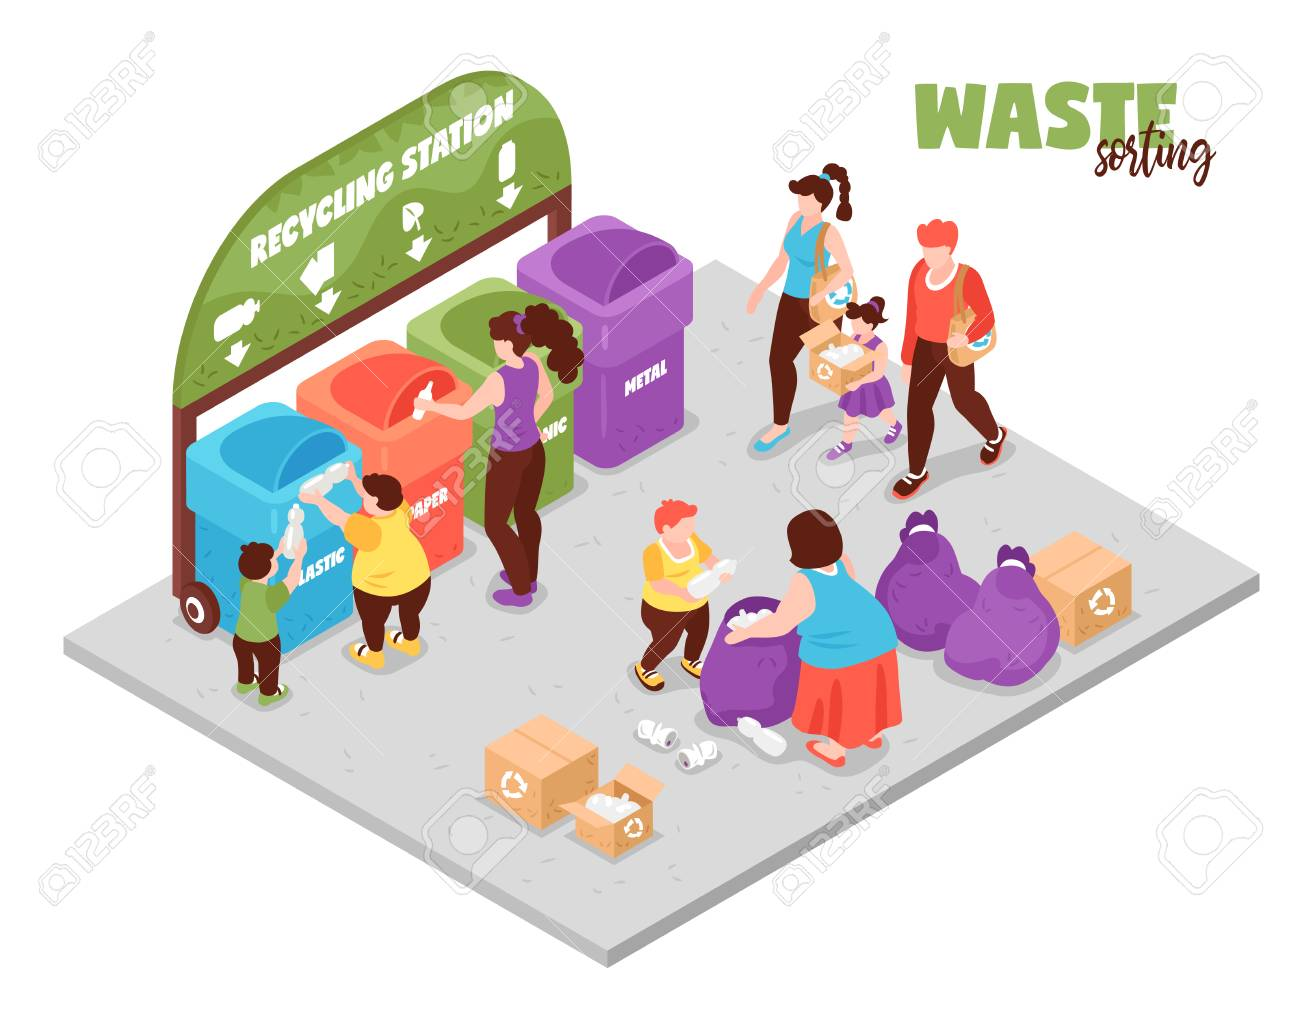 People having zero waste lifestyle and sorting garbage at recycling station 3d isometric vector illustration - 119846450